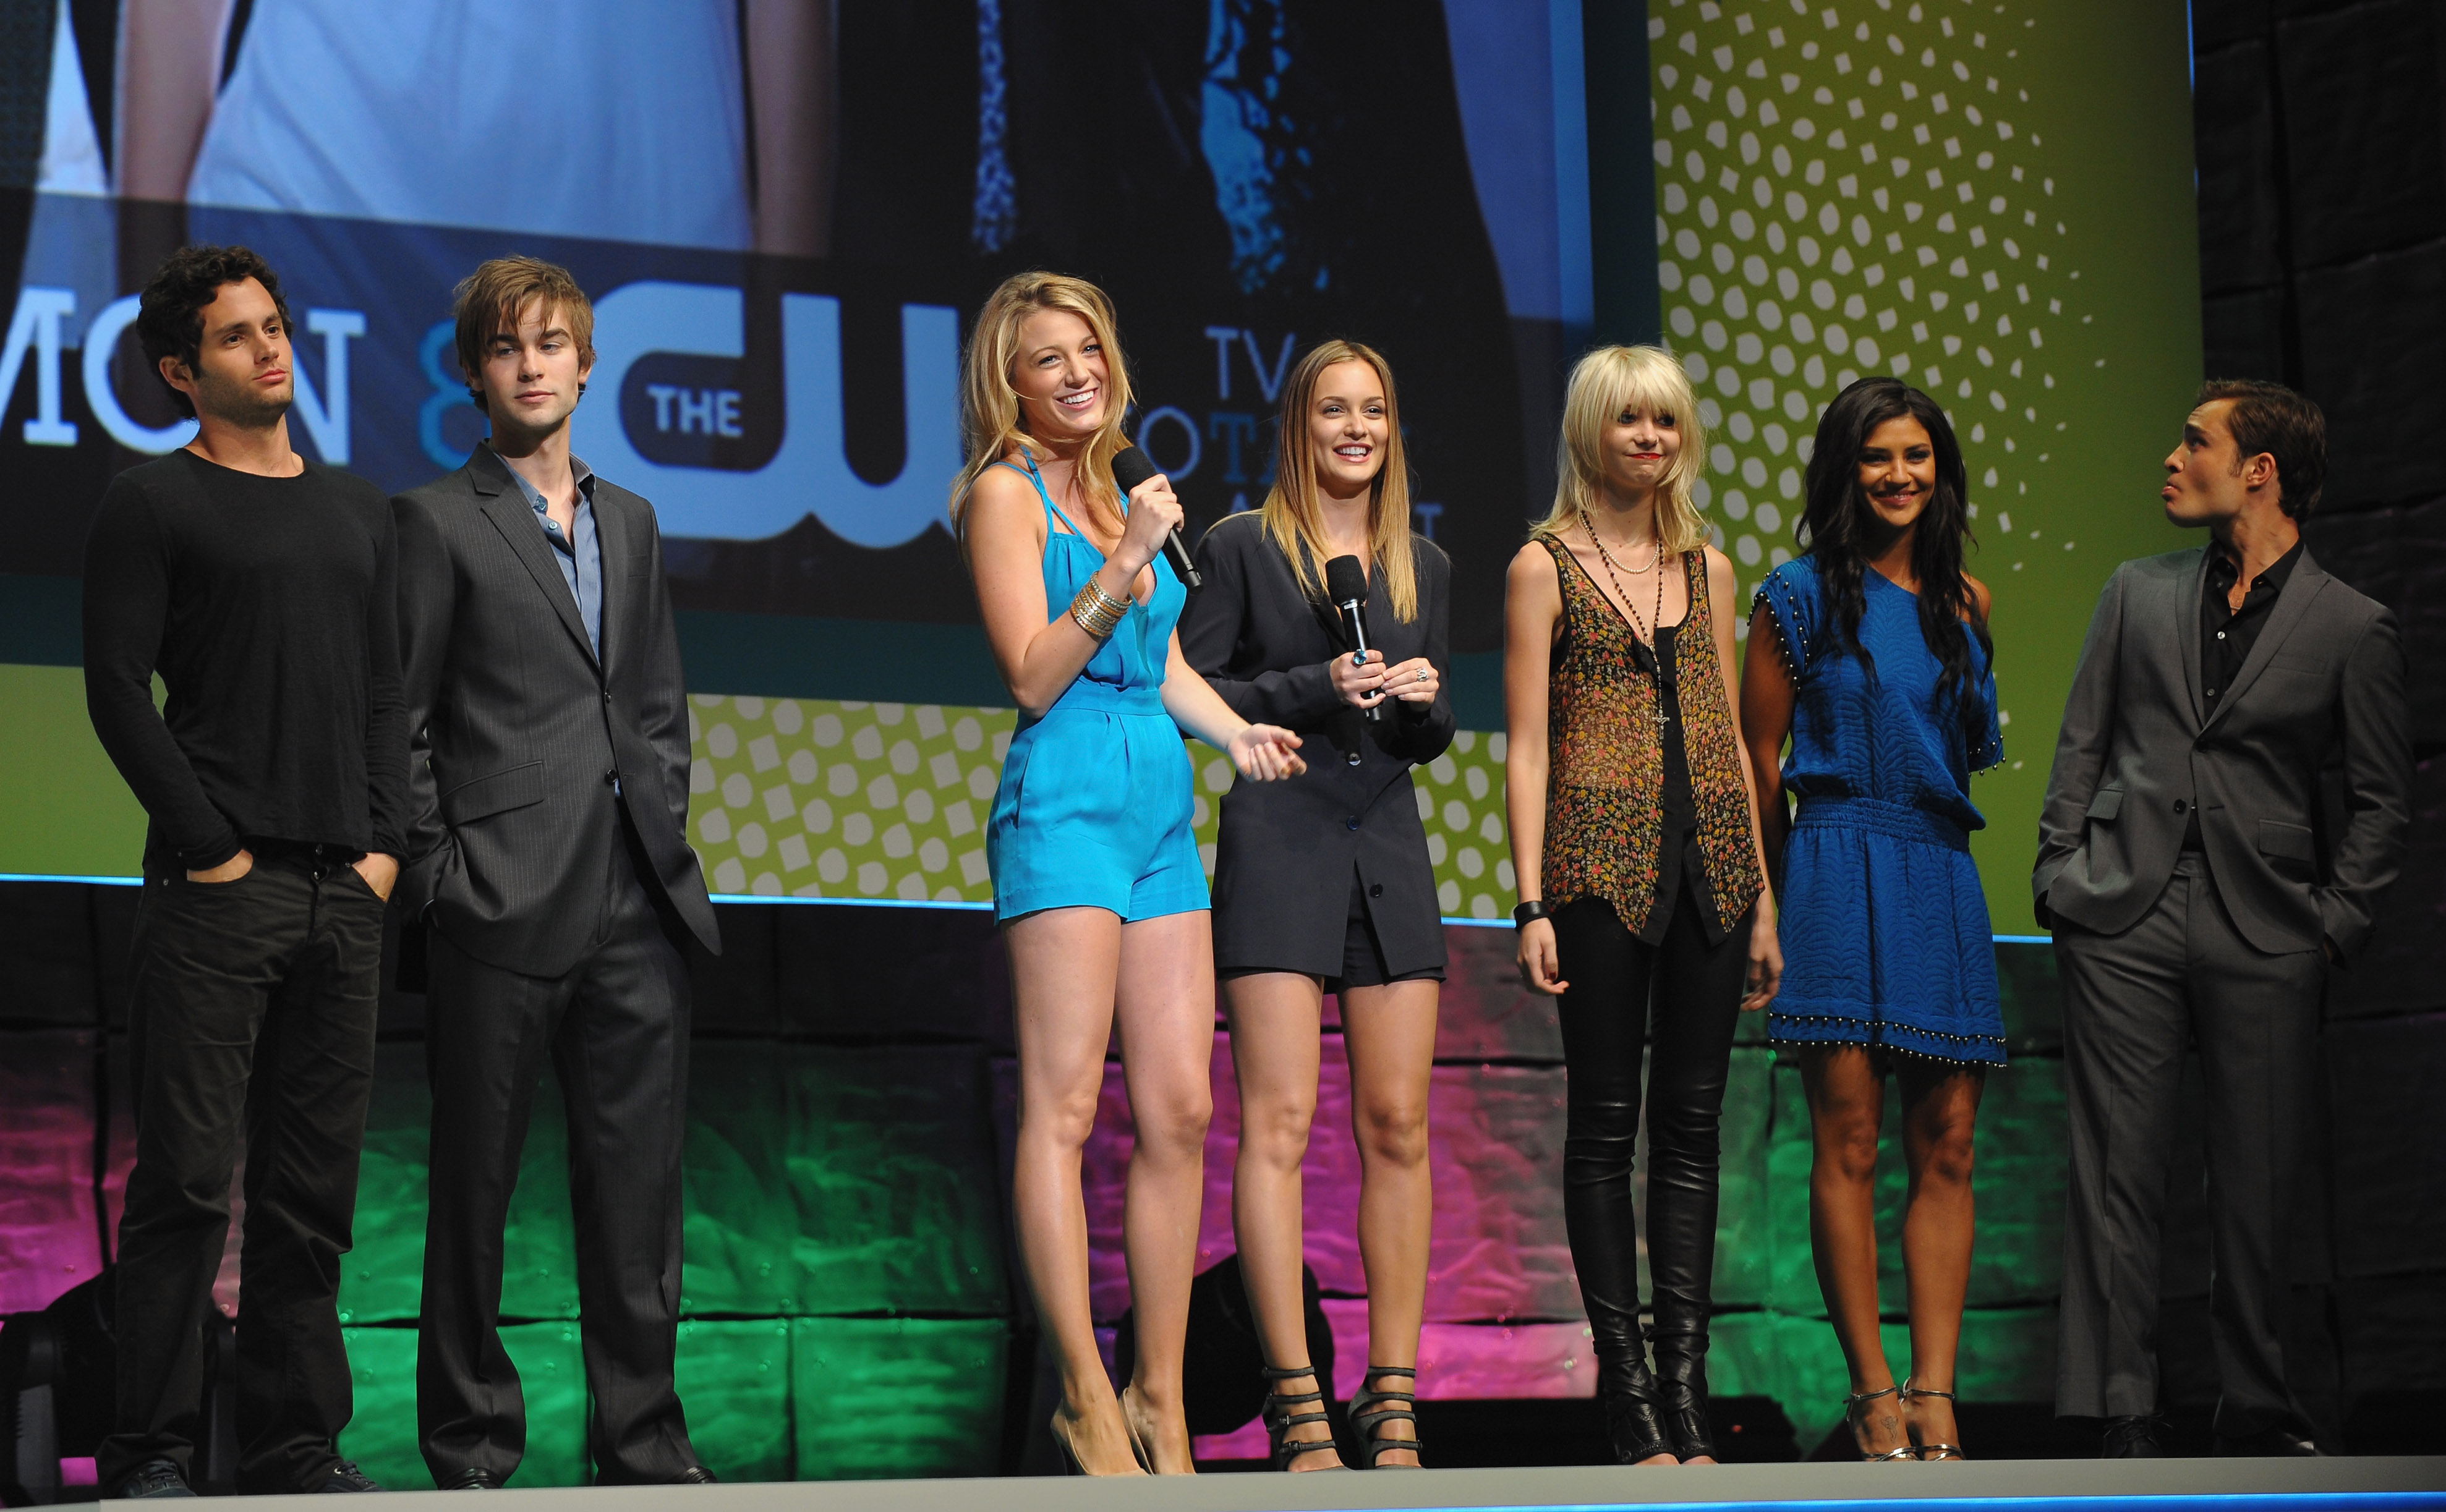 The cast chatted with press during a 2009 CW network presentation held in NYC in May 2009.